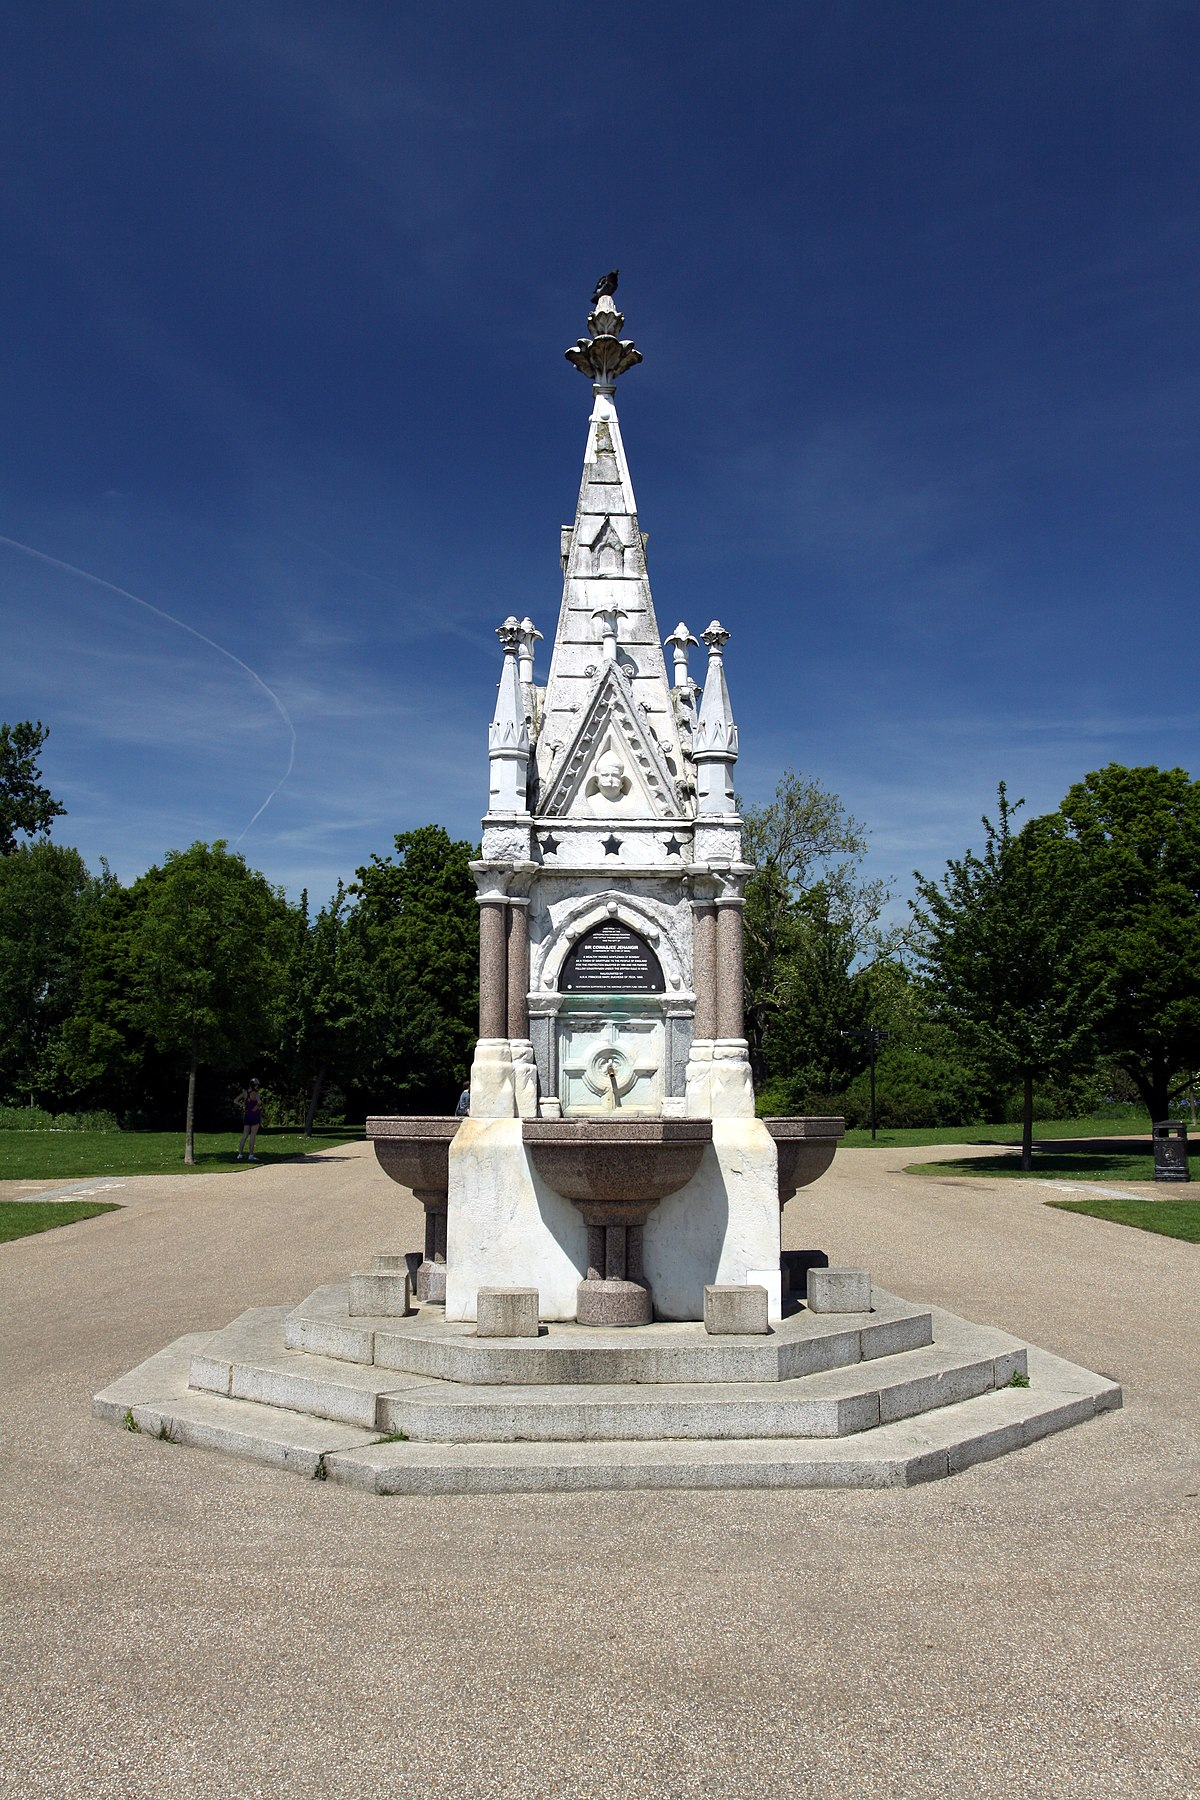 Readymoney Drinking Fountain - Wikipedia